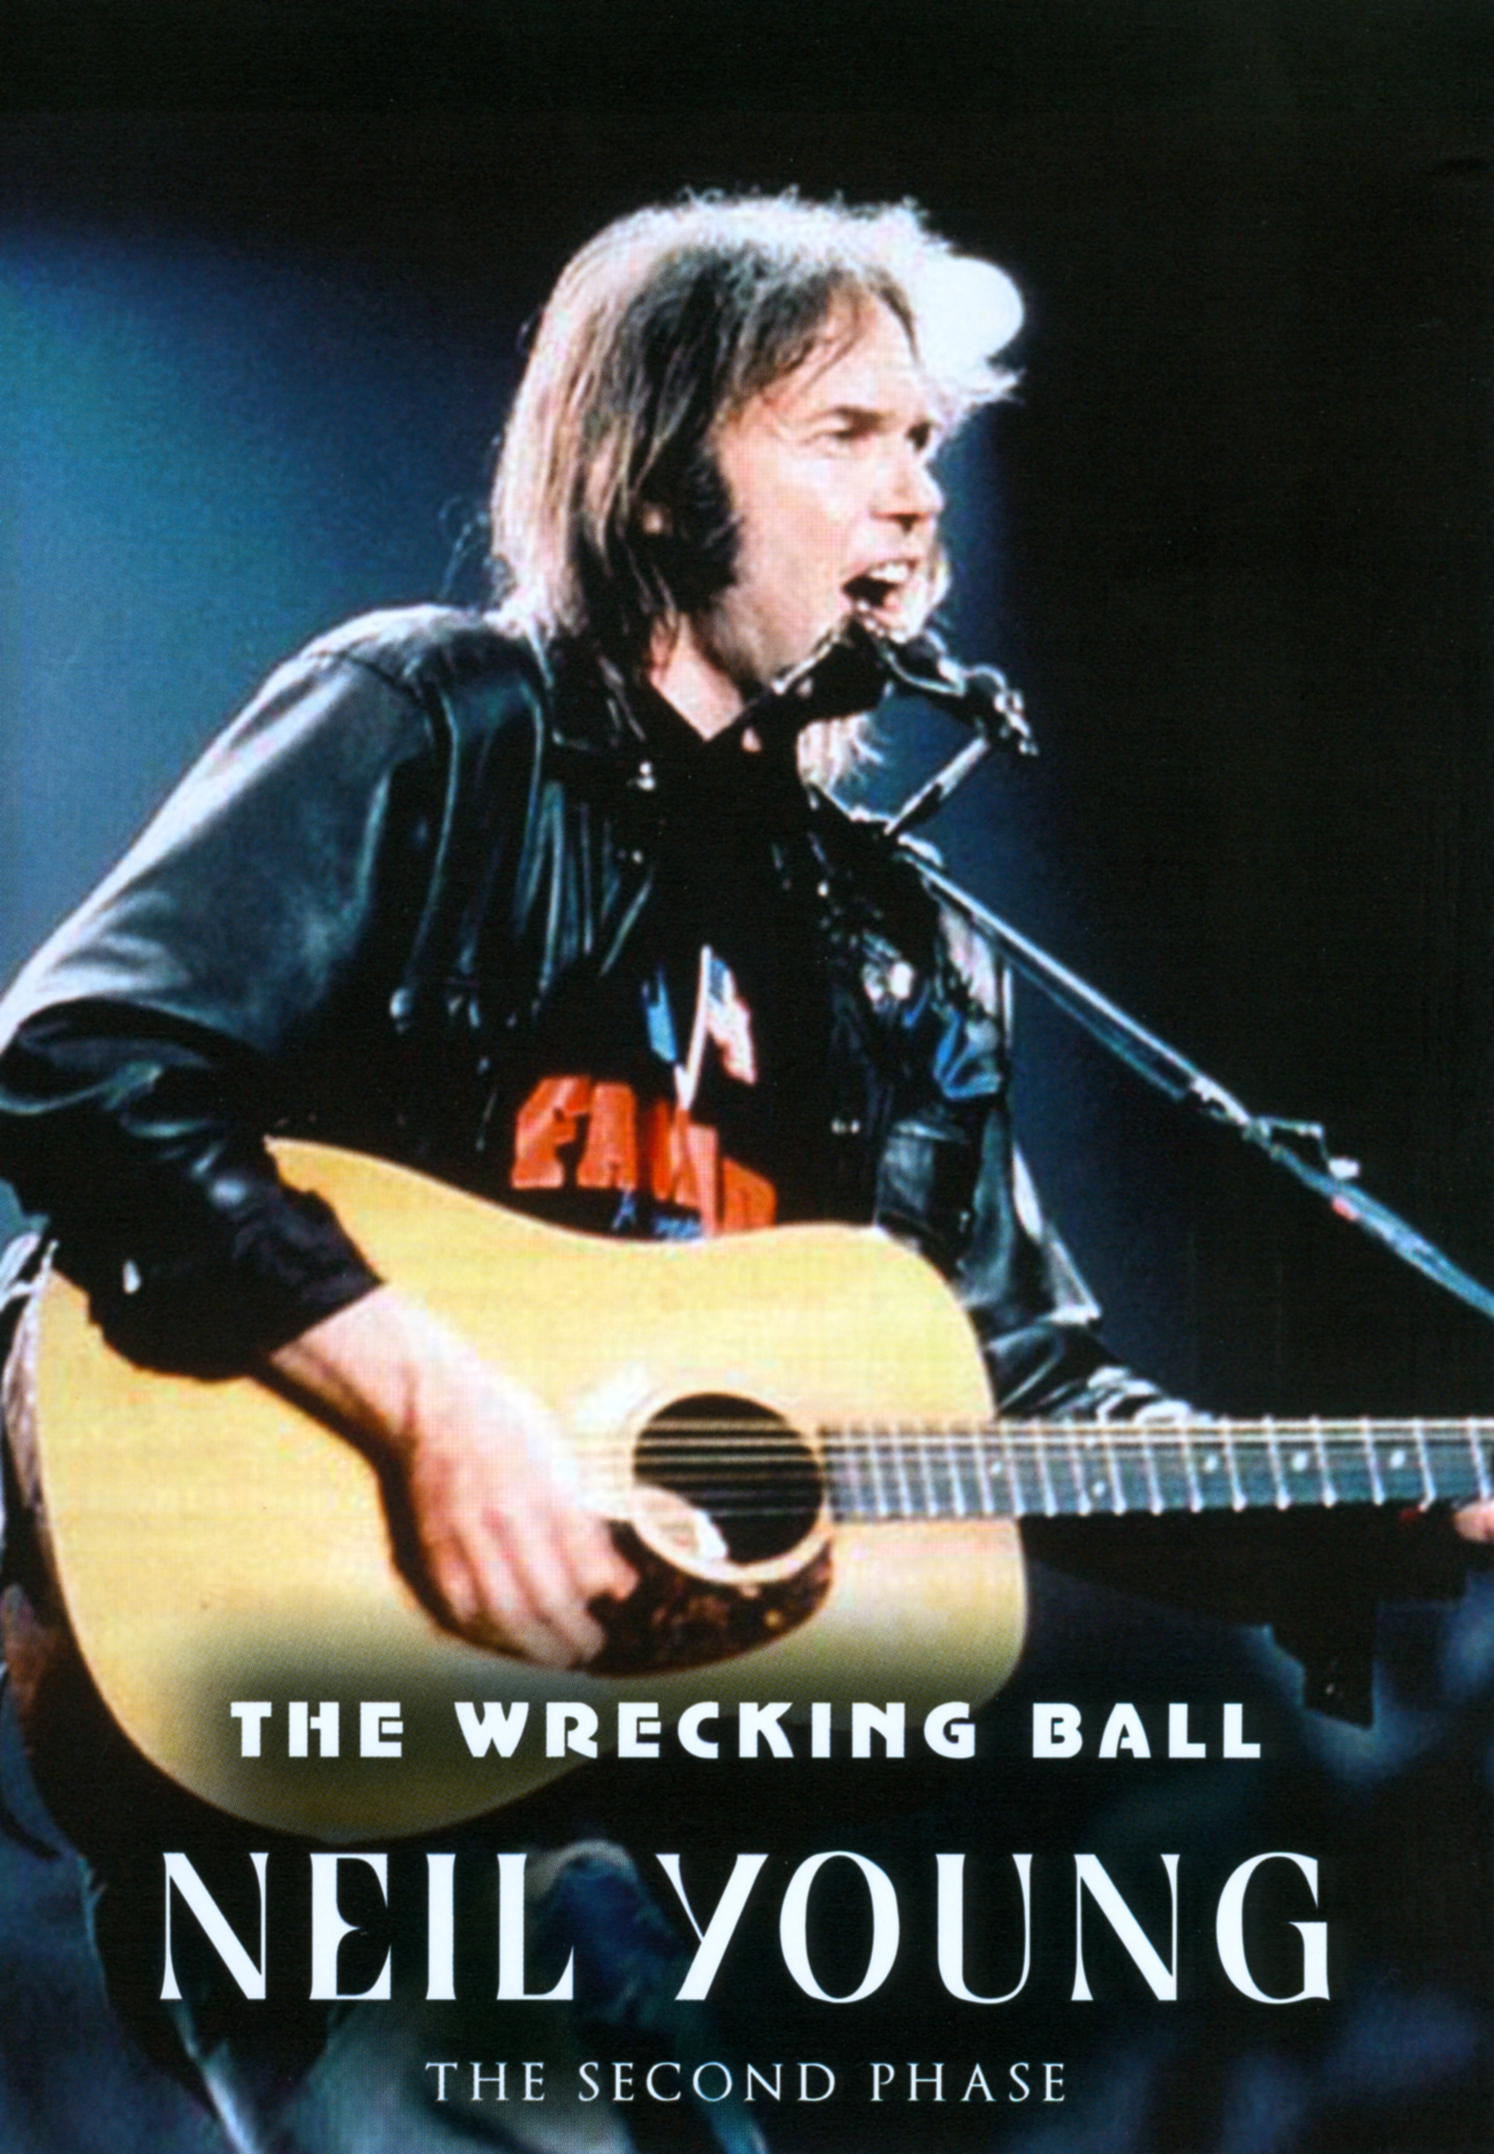 Neil Young: The Wrecking Ball